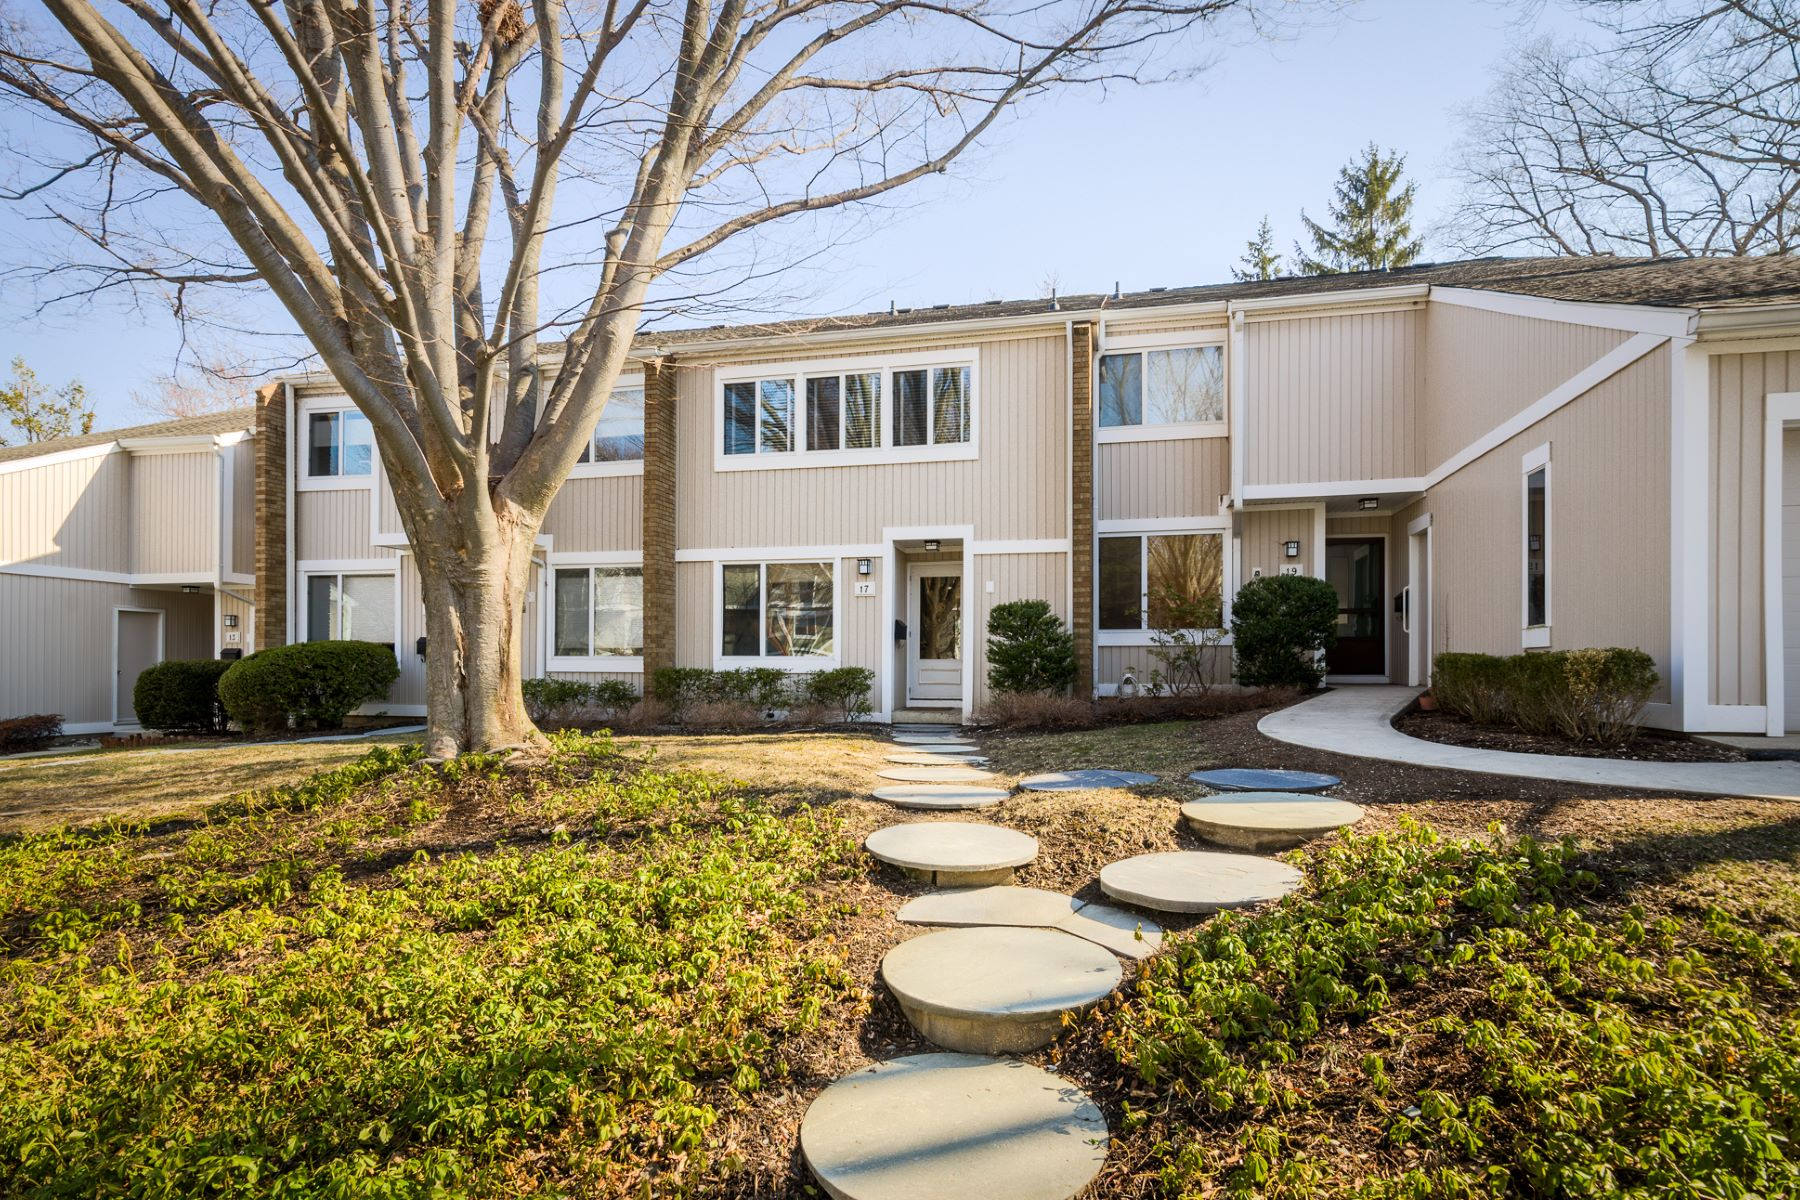 townhouses for Rent at Stunning 2 Bedroom Queenston Commons for Rent! 17 Gordon Way Princeton, New Jersey 08540 United States